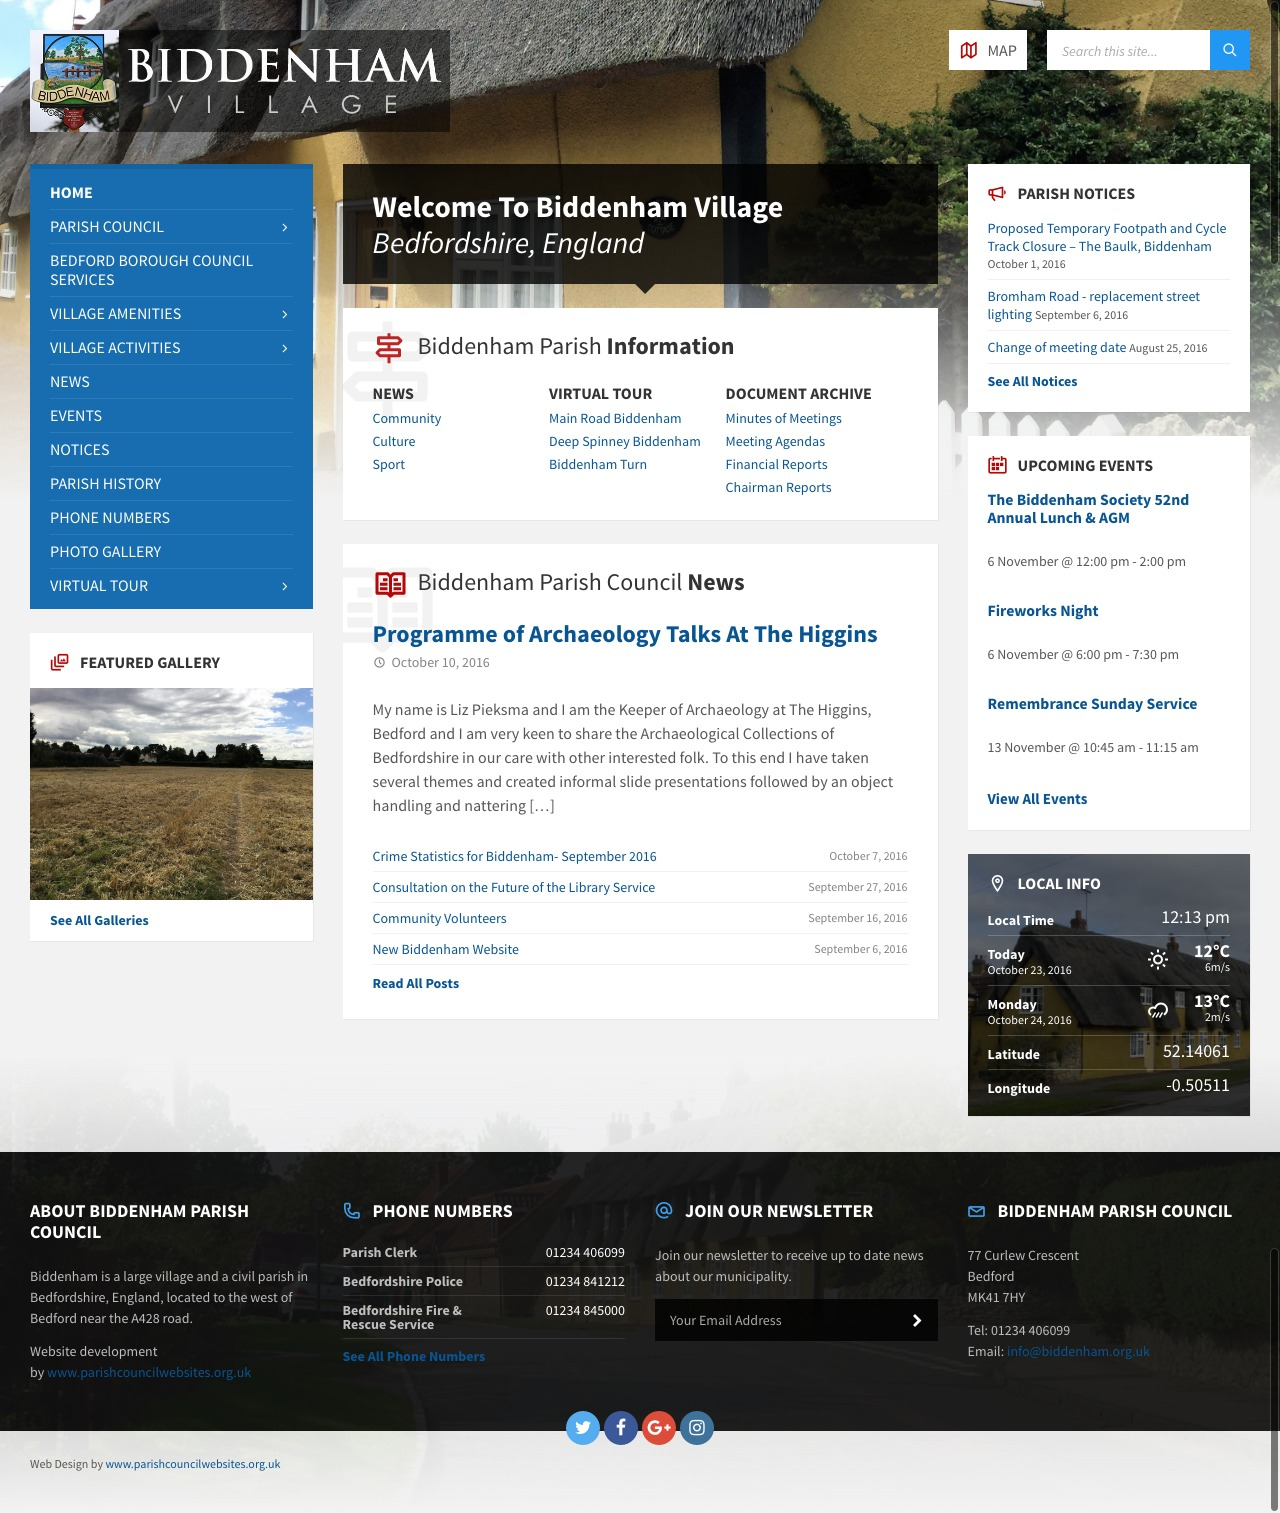 The new website is a valuable village resource